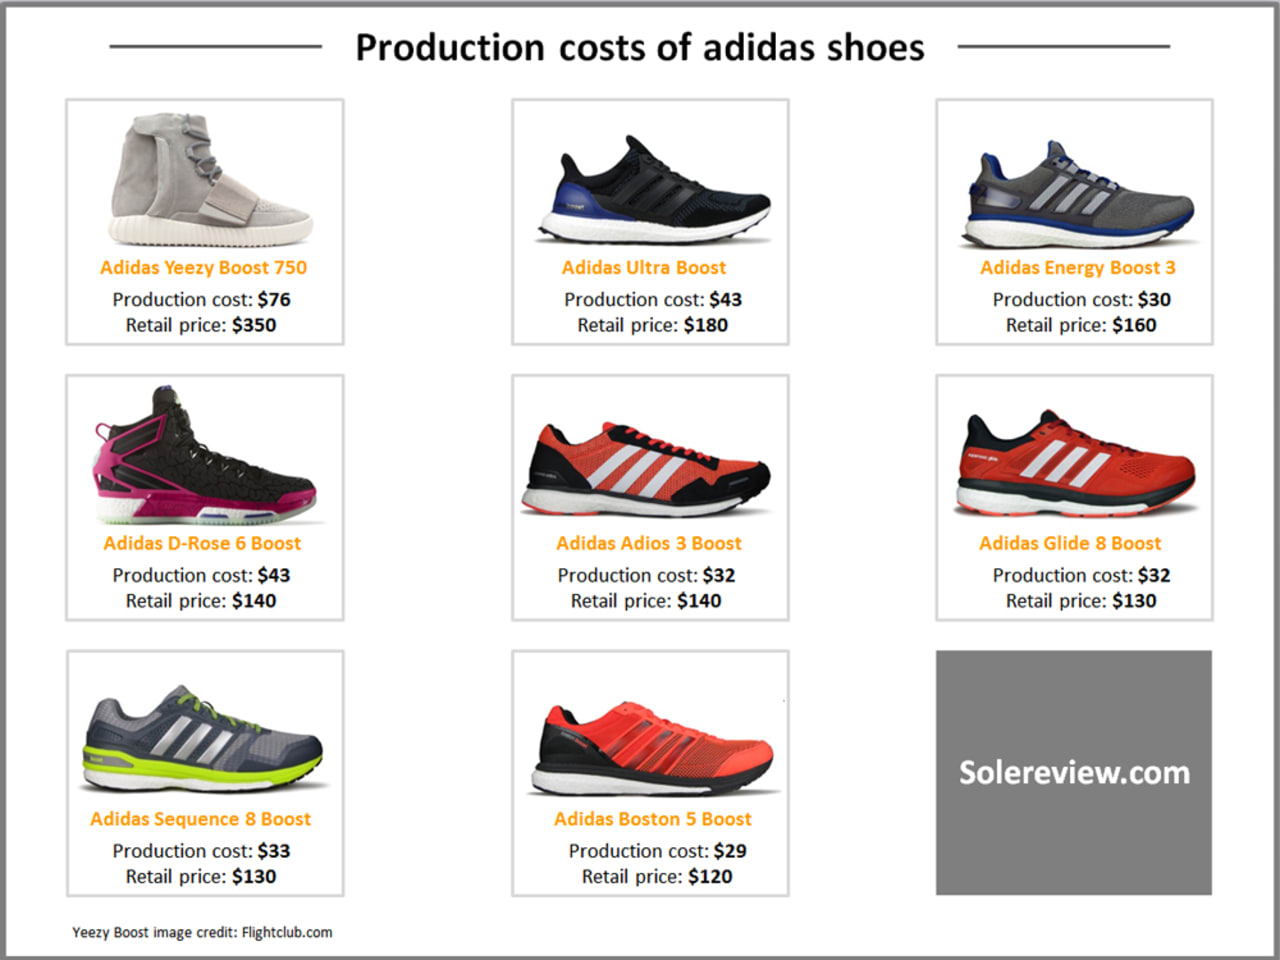 Production Cost of the adidas Yeezy